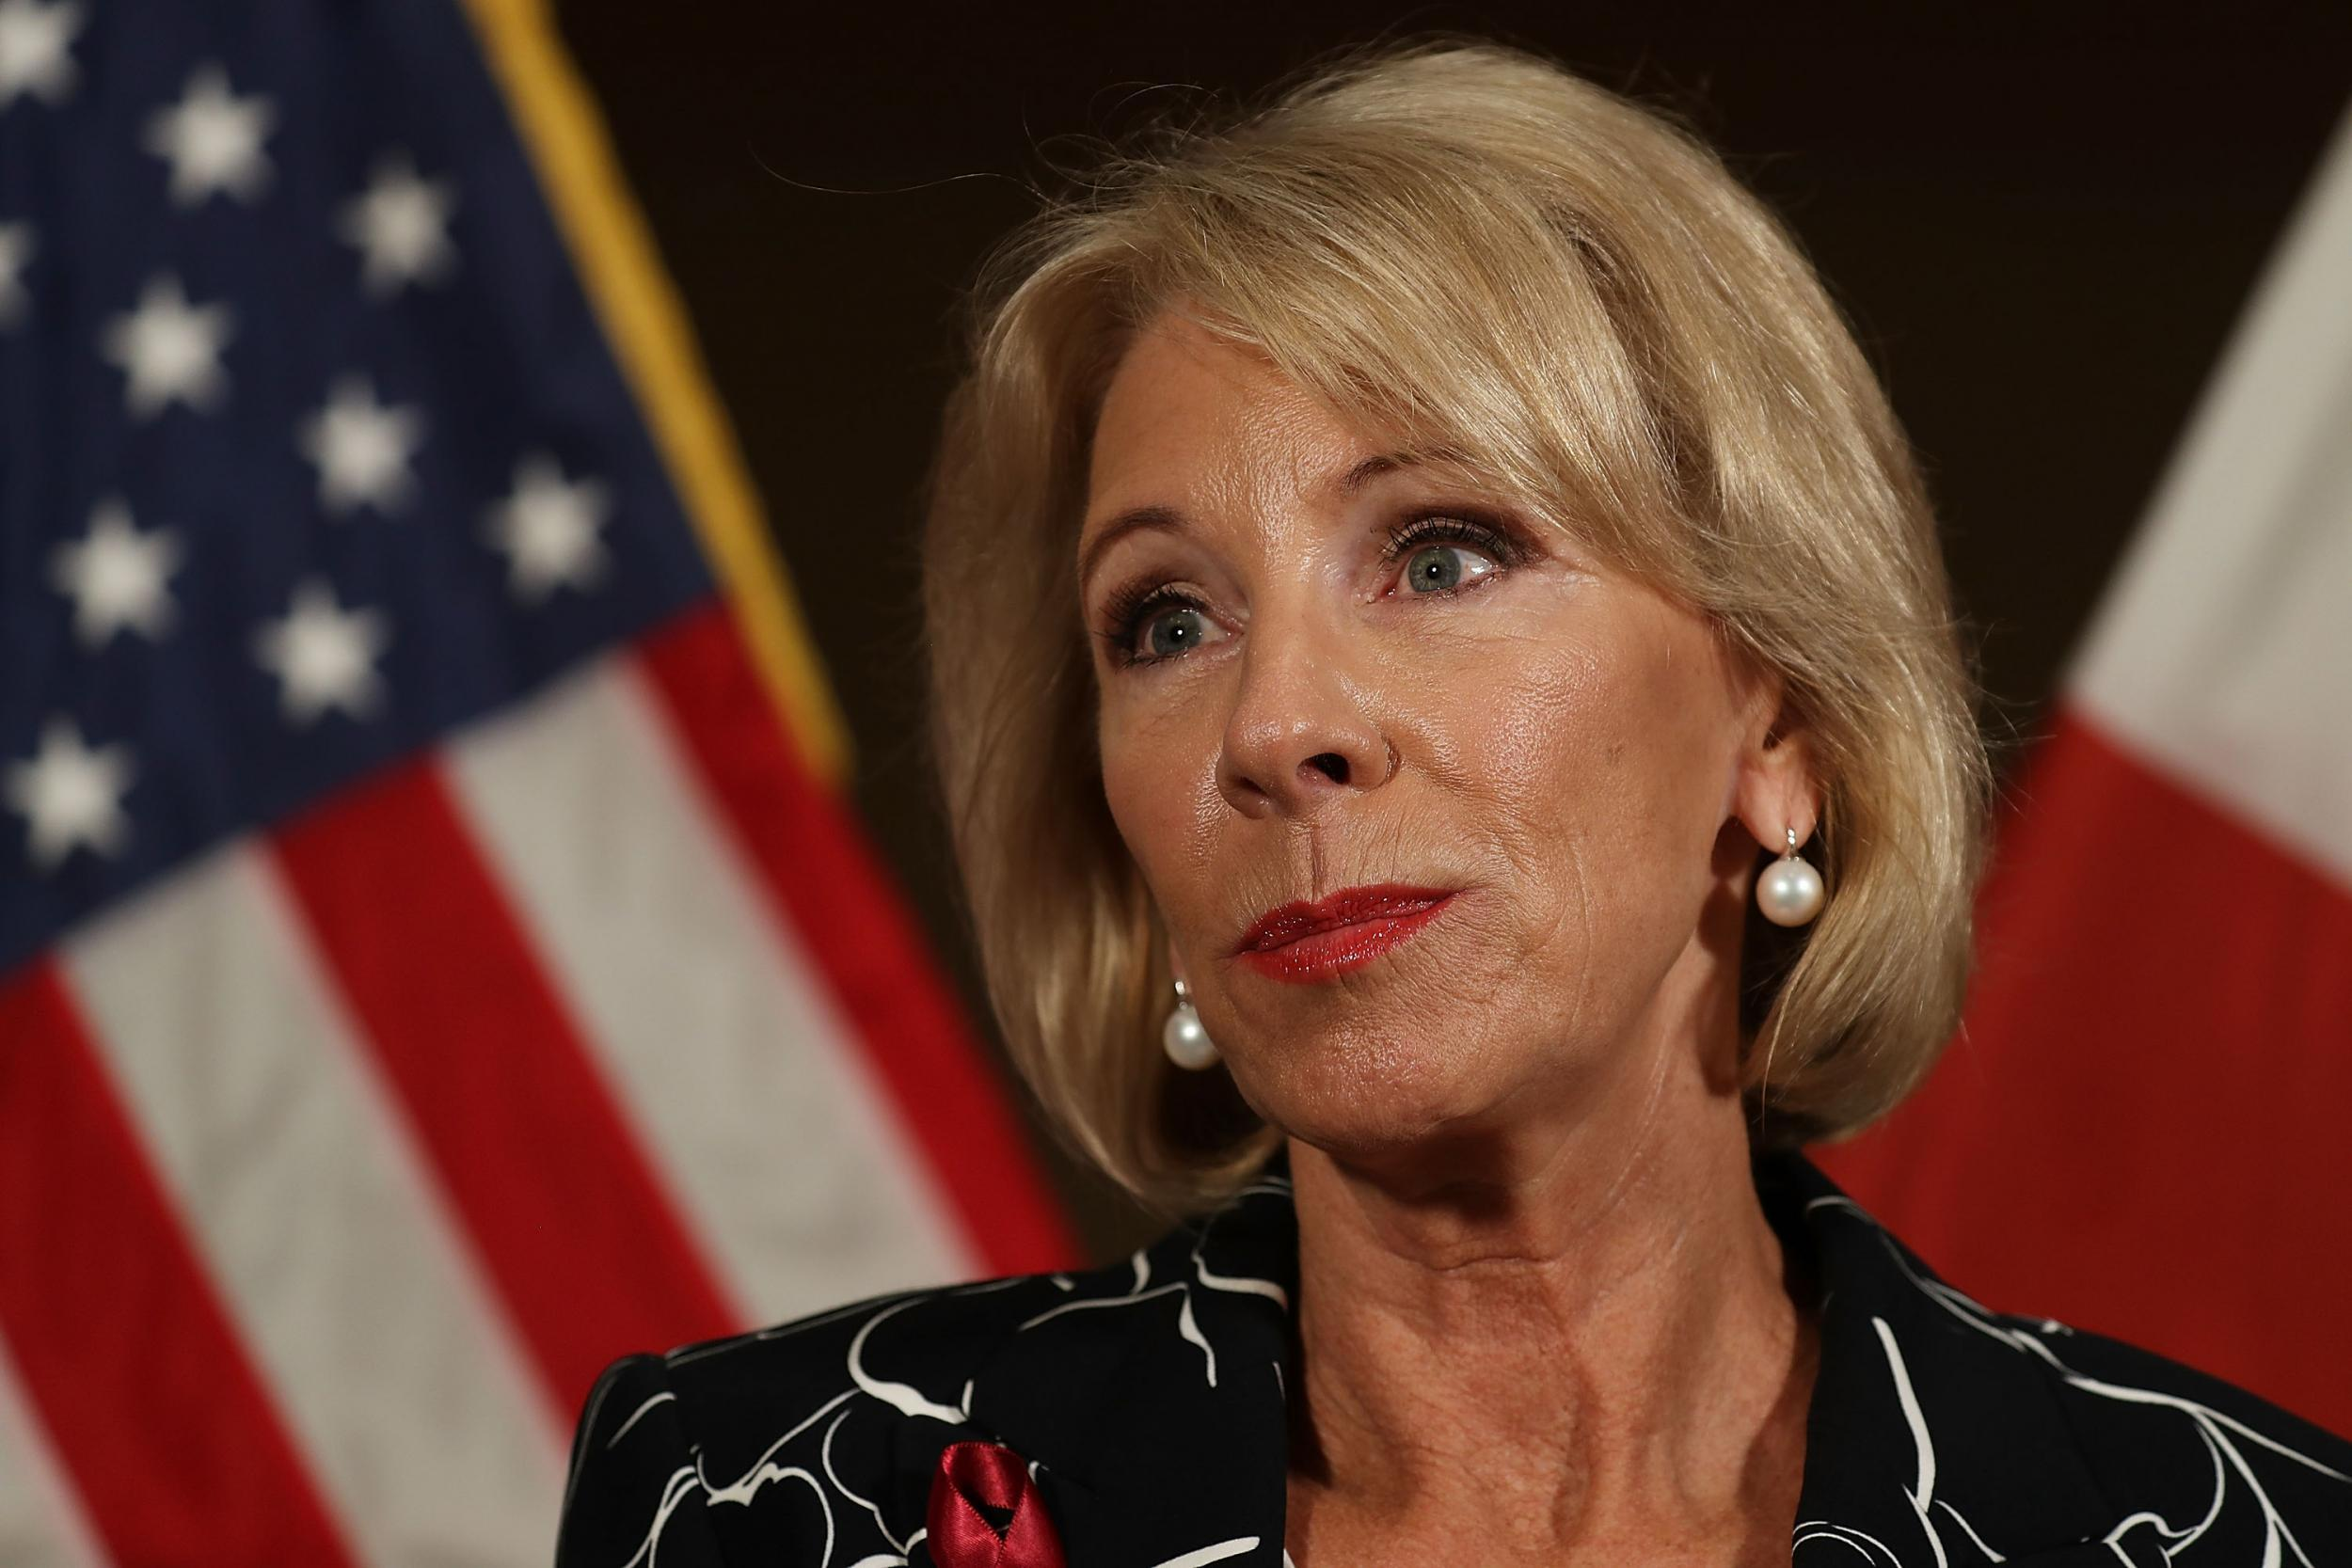 'That was very frustrating': Parkland high school students not impressed by Betsy DeVos's visit after shooting